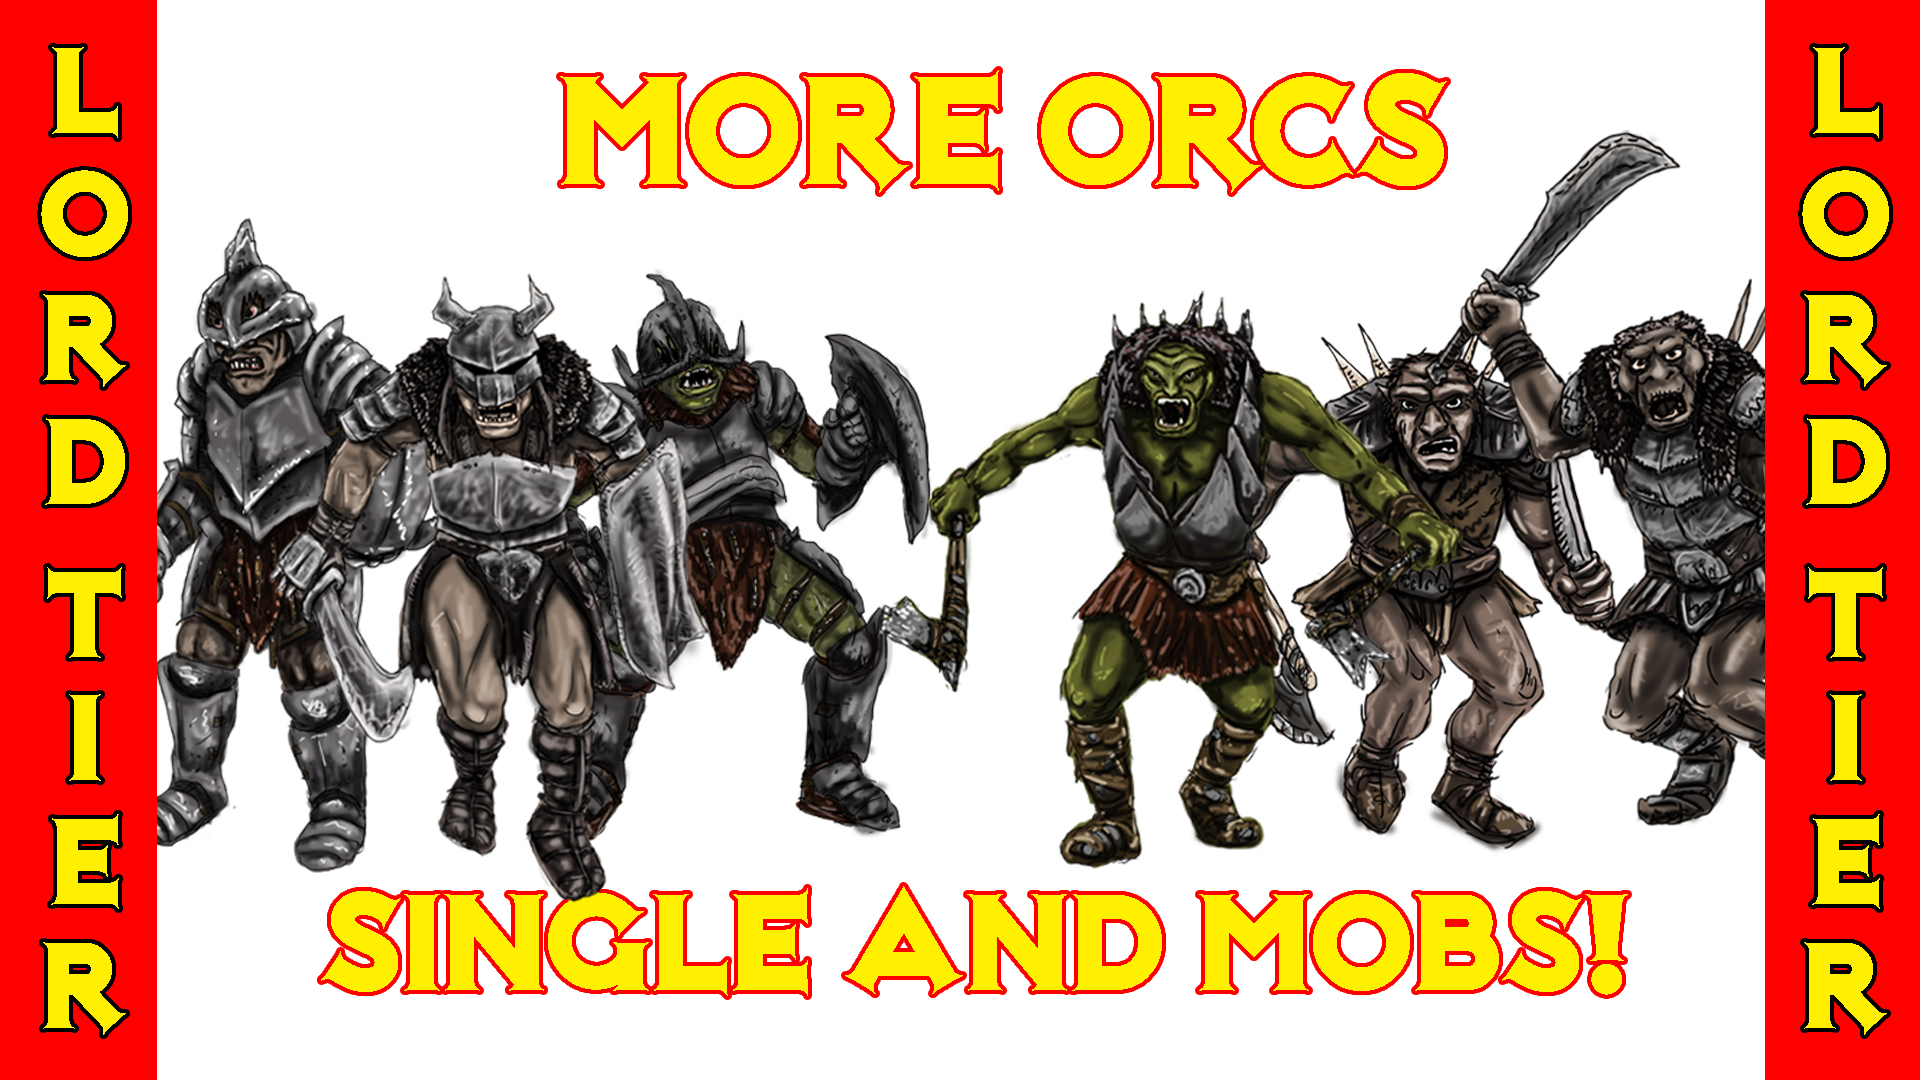 018 More Orcs - Lord Tier